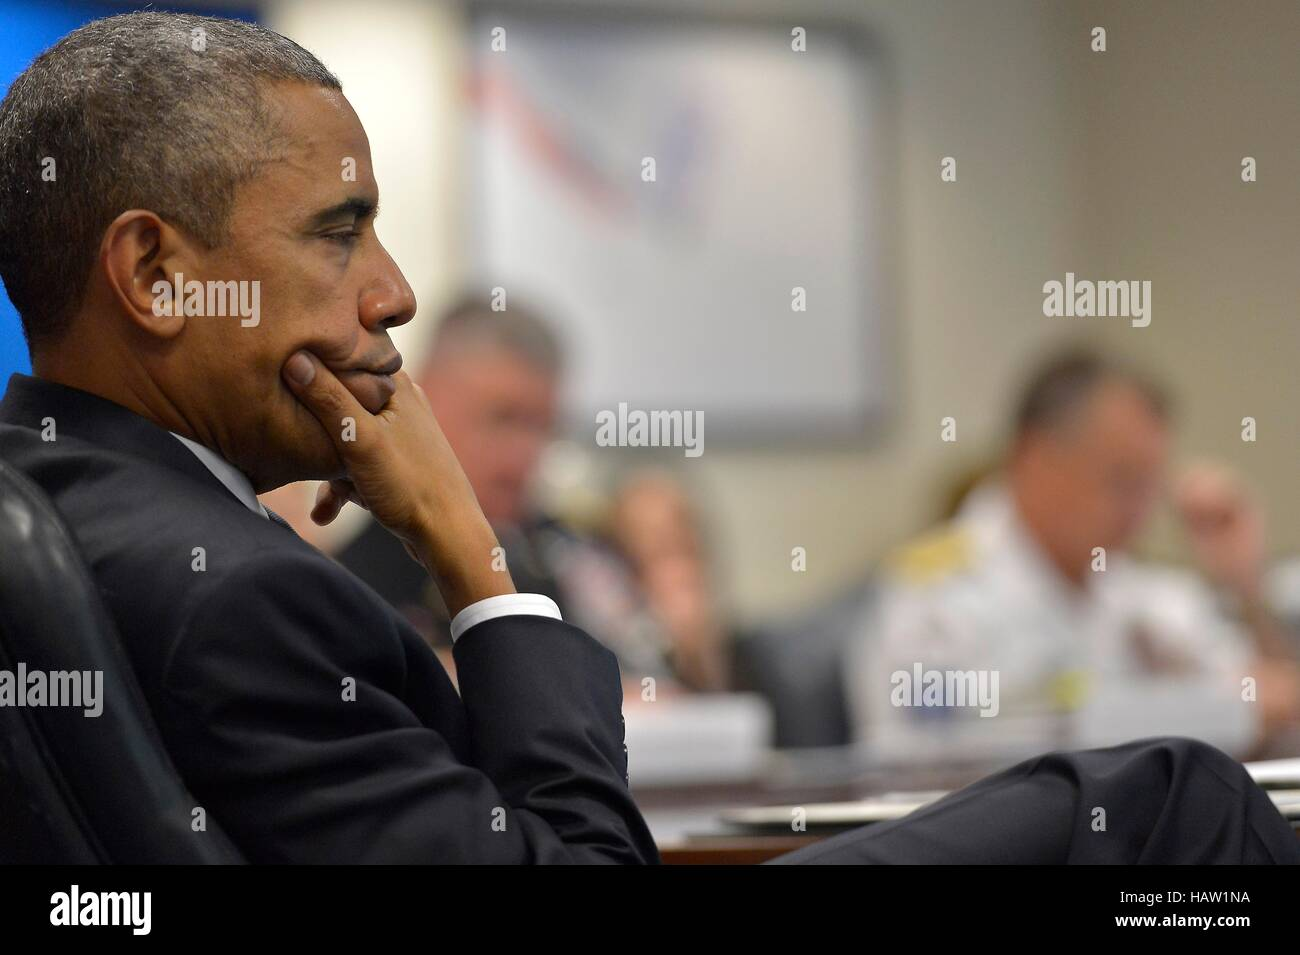 U.S. President Barack Obama listens to a national security team briefing at the Pentagon July 6, 2015 in Washington, - Stock Image